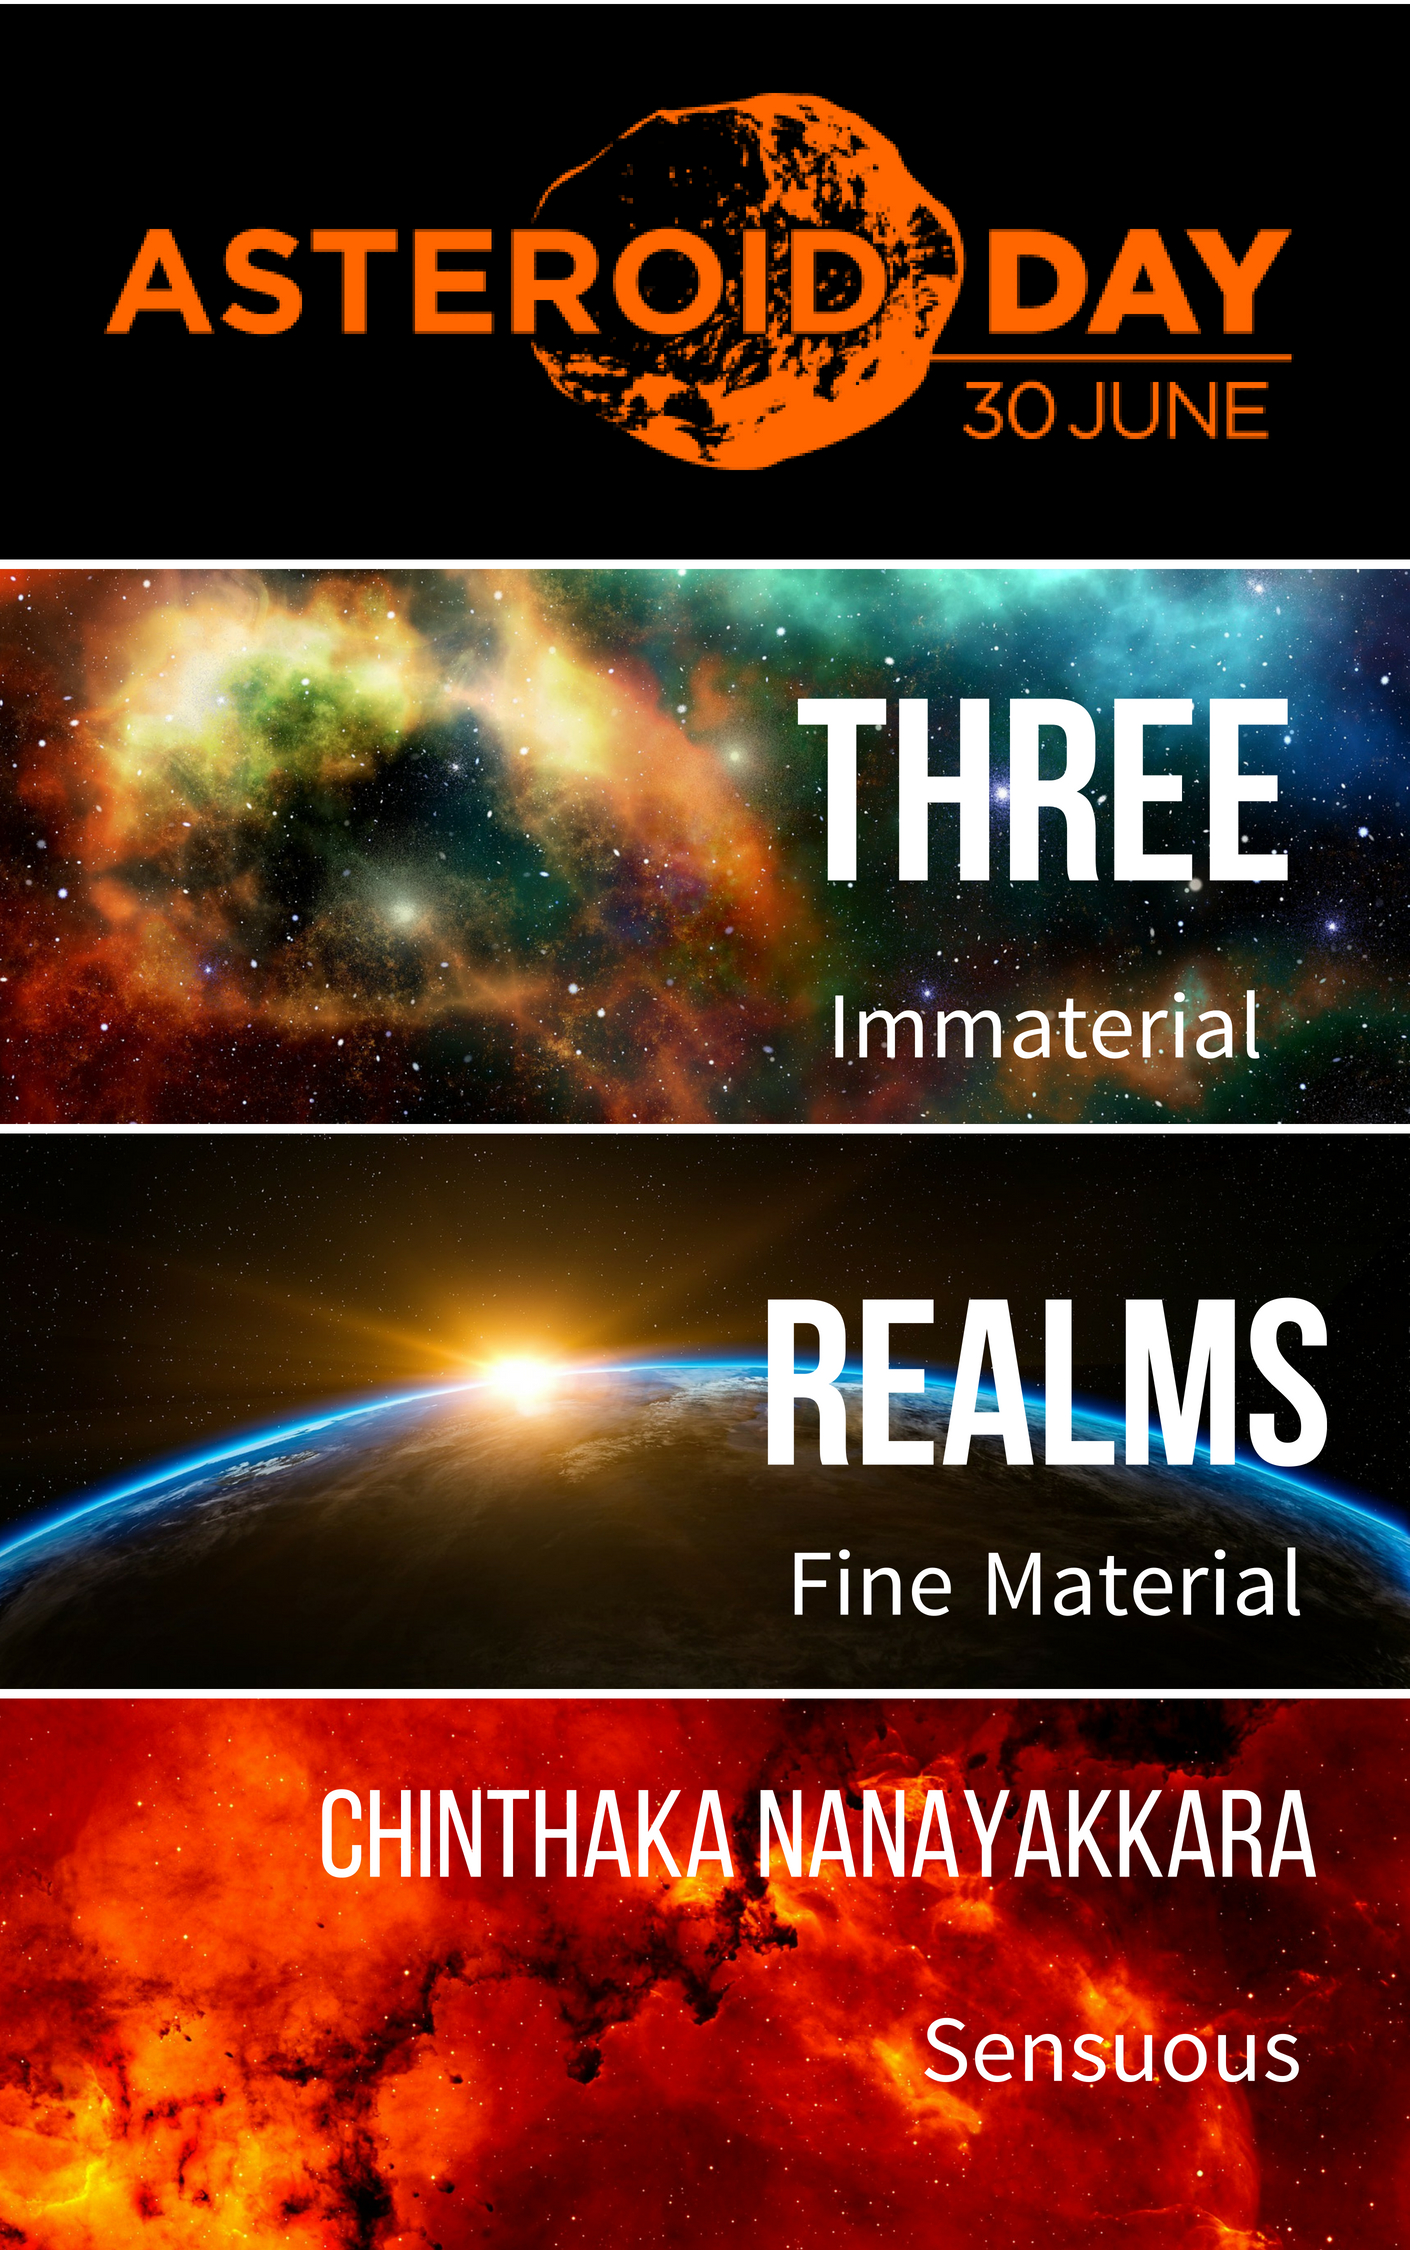 the universal web astrophysical oneness in literature essay In composition, unity is the quality of oneness in a paragraph or essay that results  when all the words and sentences contribute to a single main.